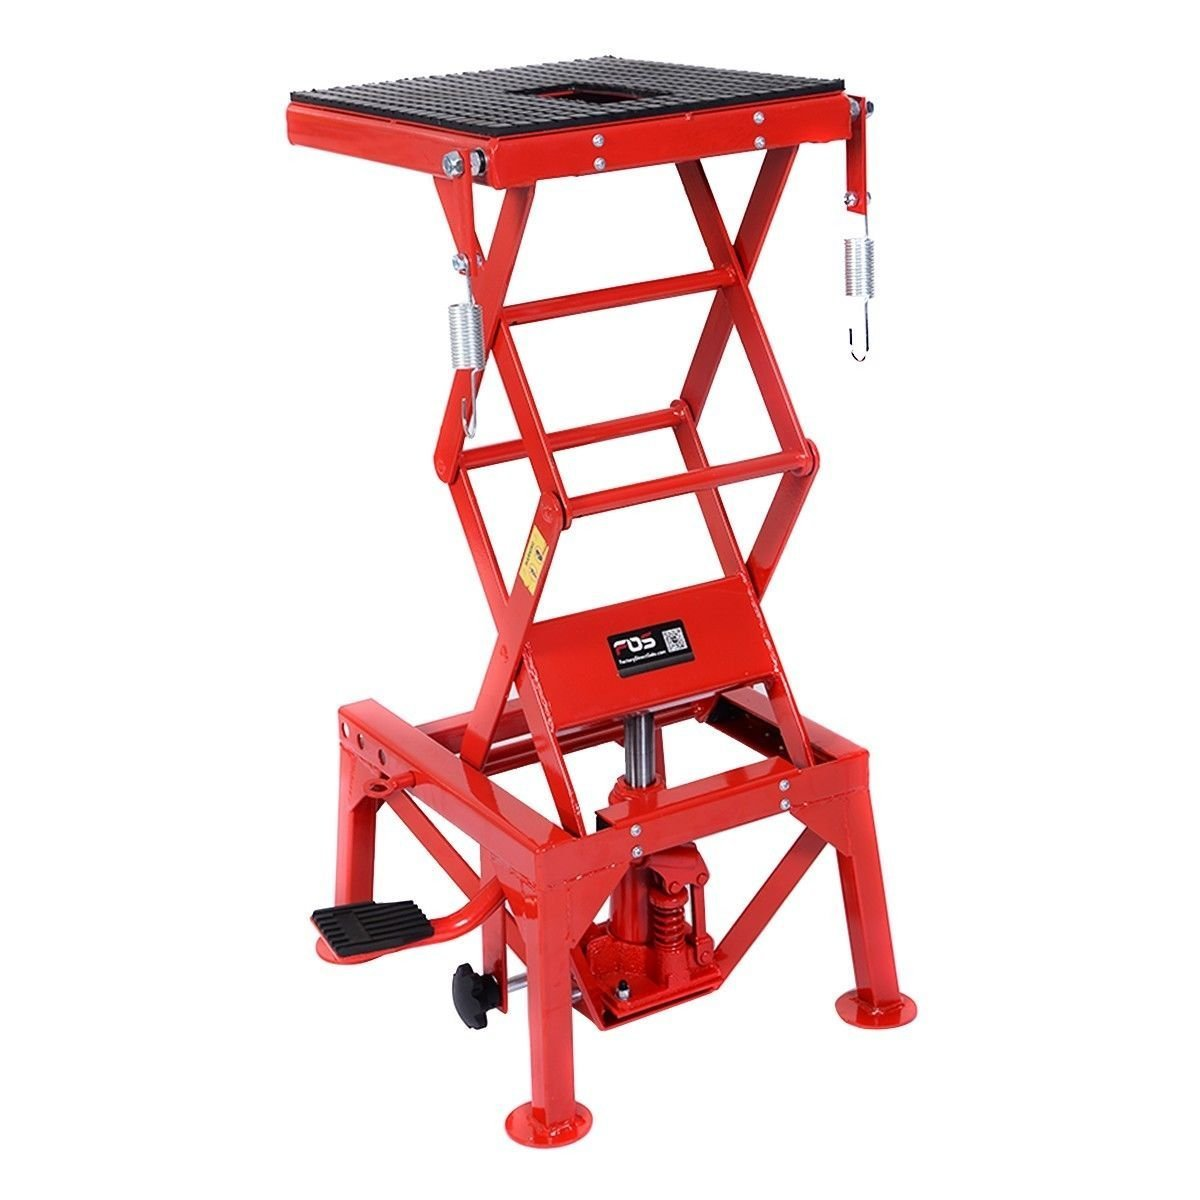 Goplus 300lb Motorcycle Lift Table